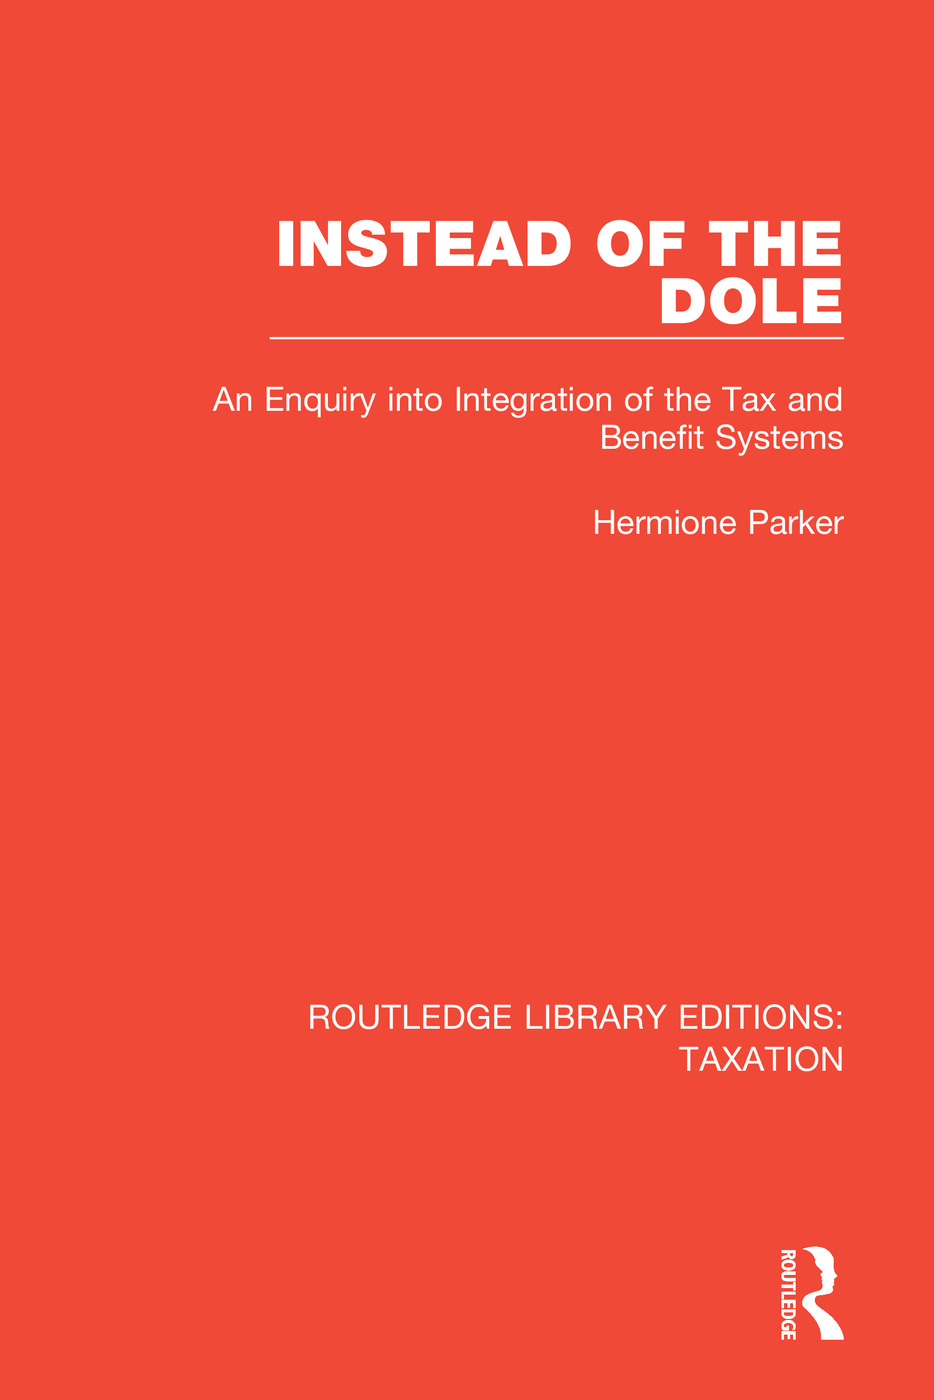 Instead of the Dole